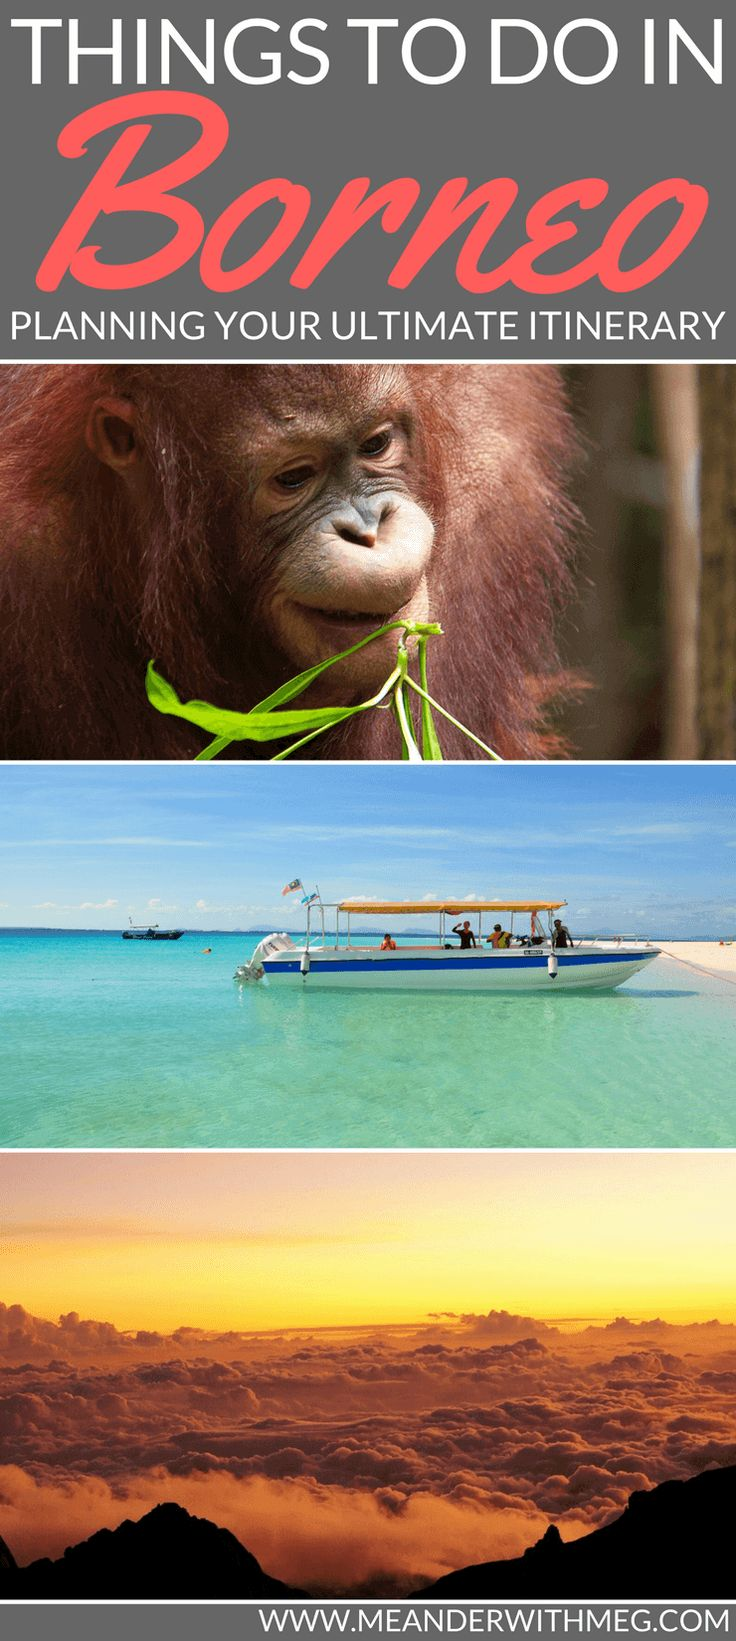 Planning a trip to Borneo? Malaysia is a wonderful destination where you can see orangutans, island hop, climb Mount Batur and sample a huge array of cuisine.   Things to do in Borneo   Borneo itinerary   Backpacking Malaysia   Solo travel   Travel planning